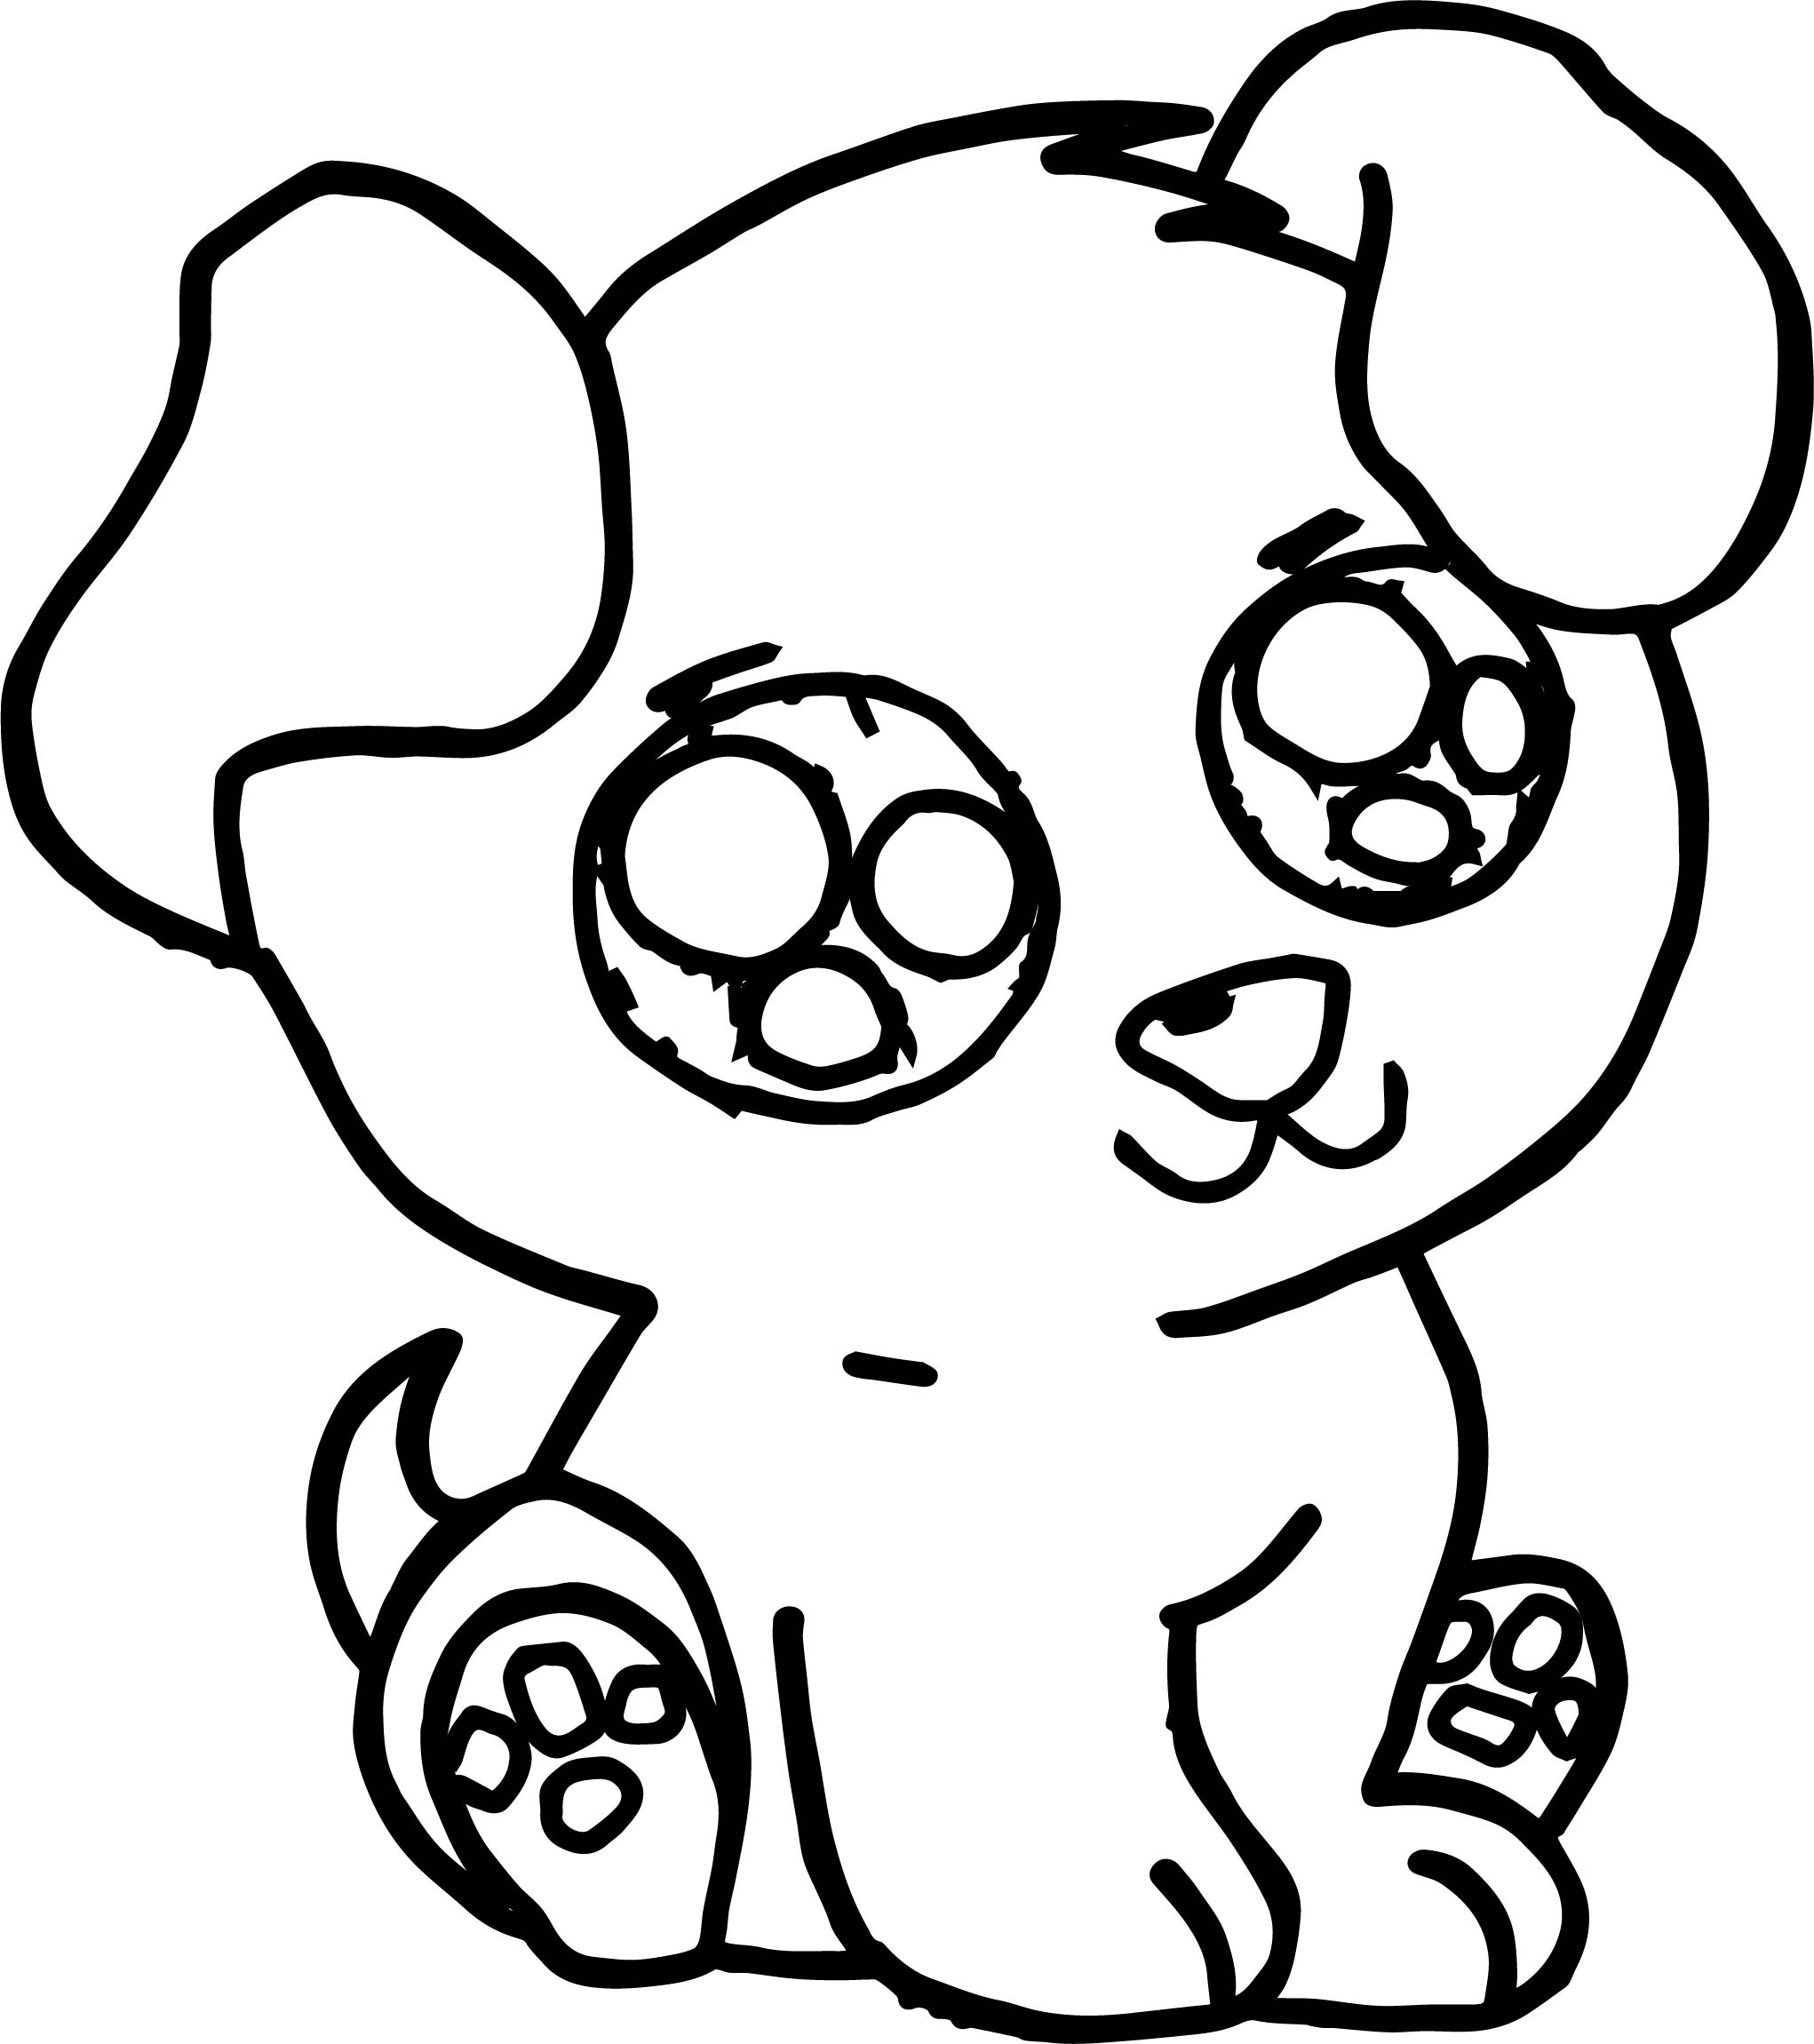 dog color pages baby dog coloring page free coloring pages online pages color dog